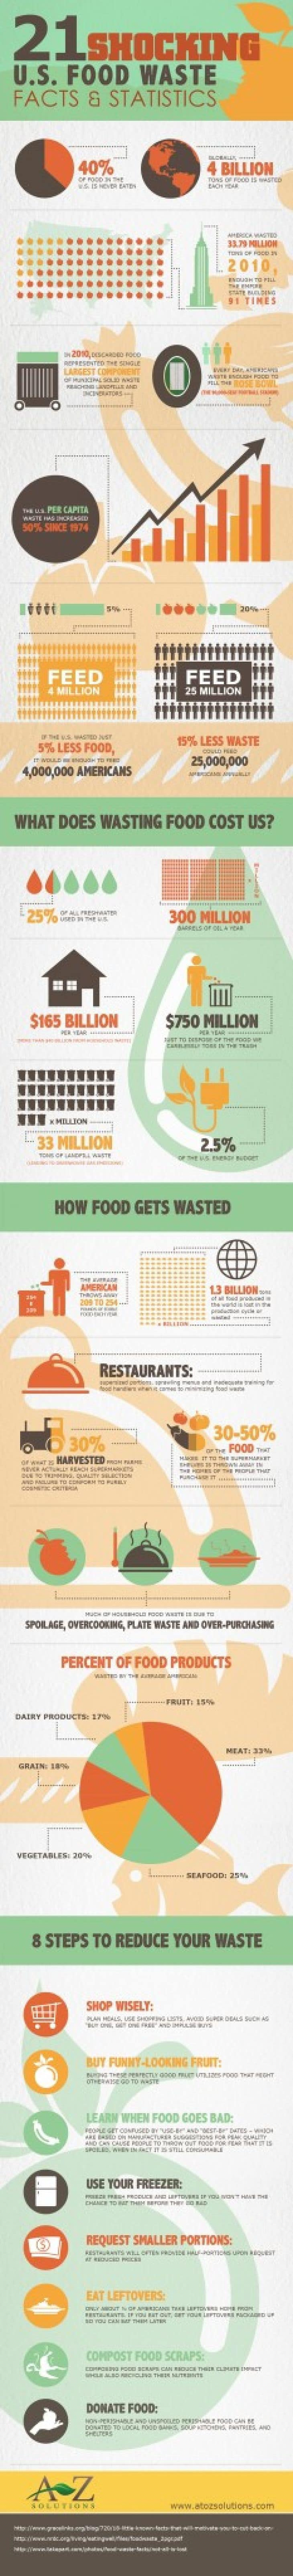 Food waste facts infographic